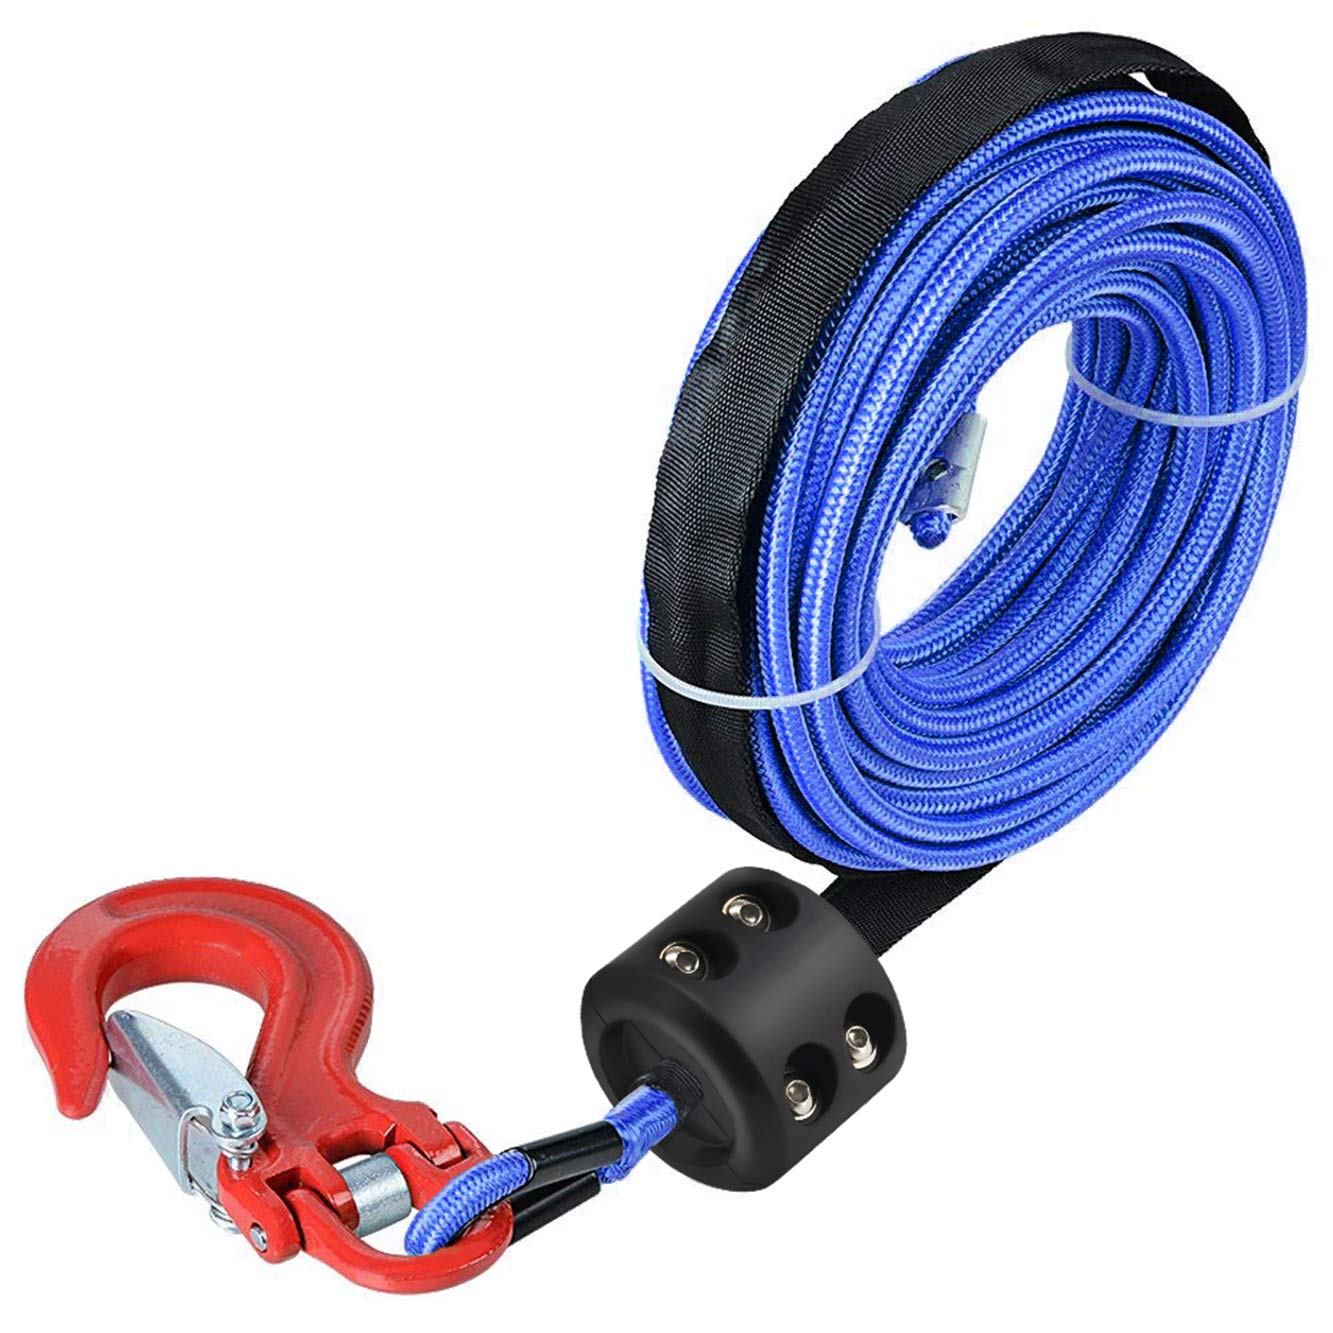 ATV UTV Winch Stopper Rubber Heavy Duty Cable Line Saver Waterproof Synthetic Rope Hook Allen Wrench Protect Hawse and Fairleads Quick Installation